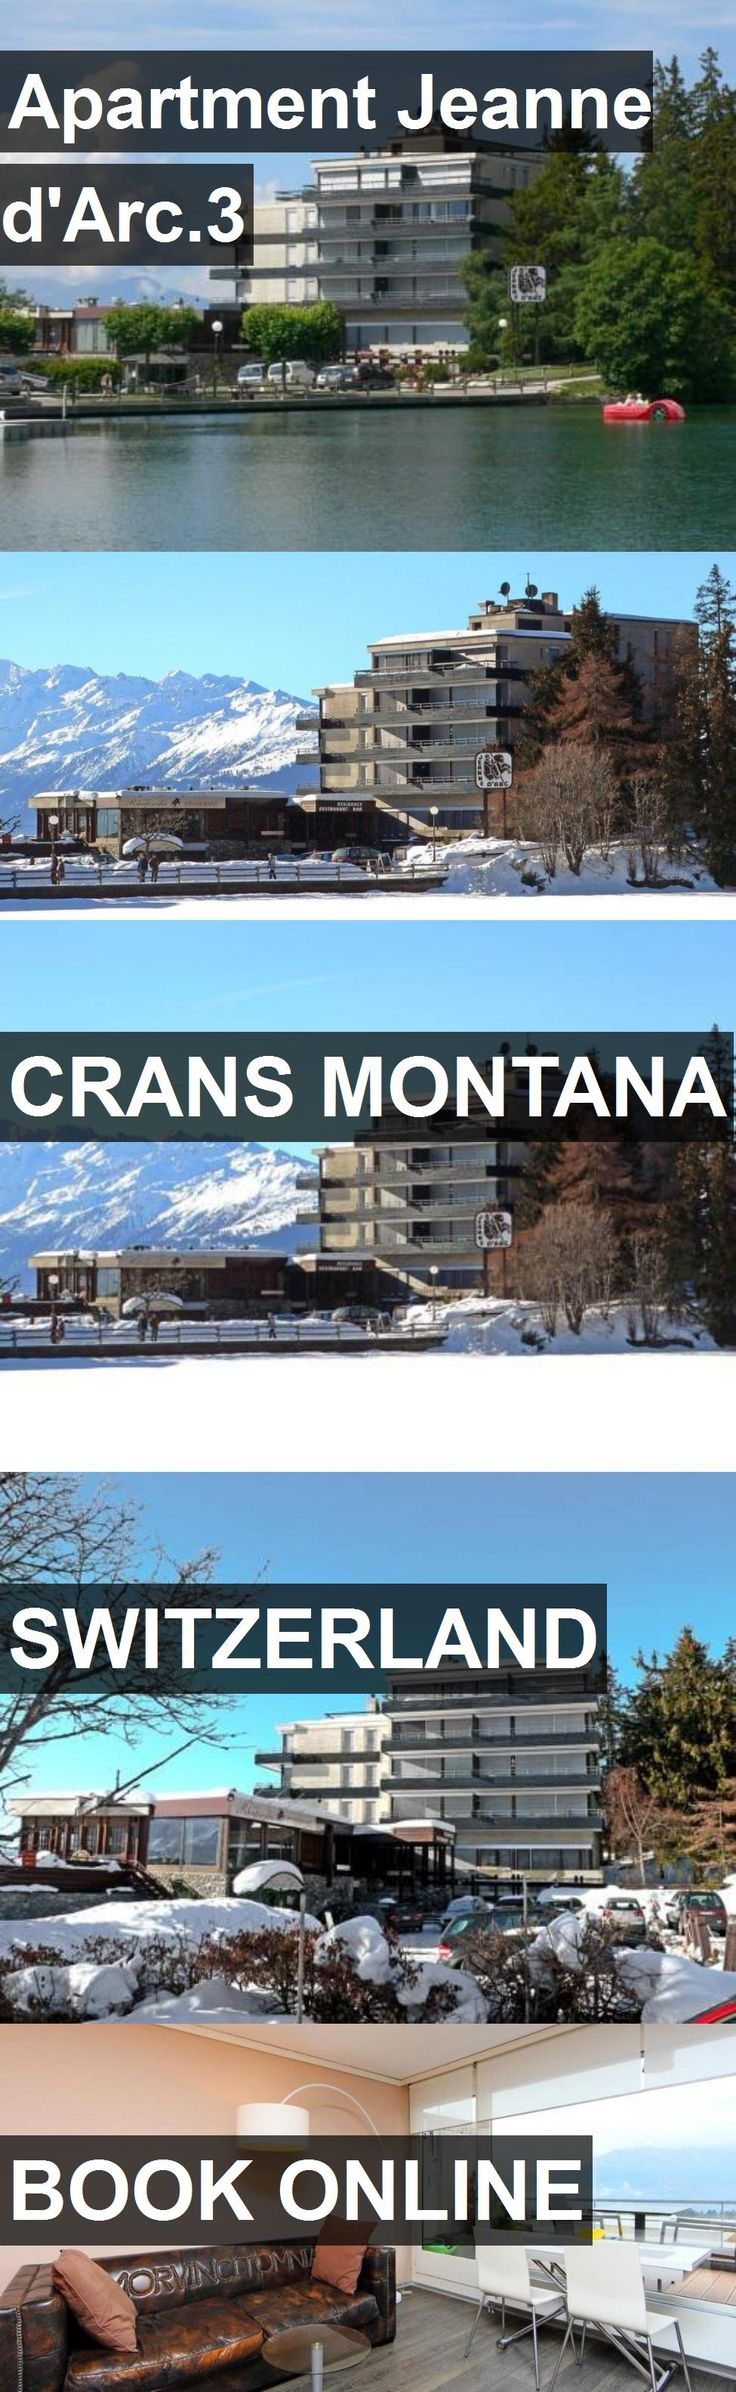 Hotel Apartment Jeanne d'Arc.3 in Crans Montana, Switzerland. For more information, photos, reviews and best prices please follow the link. #Switzerland #CransMontana #ApartmentJeanned'Arc.3 #hotel #travel #vacation